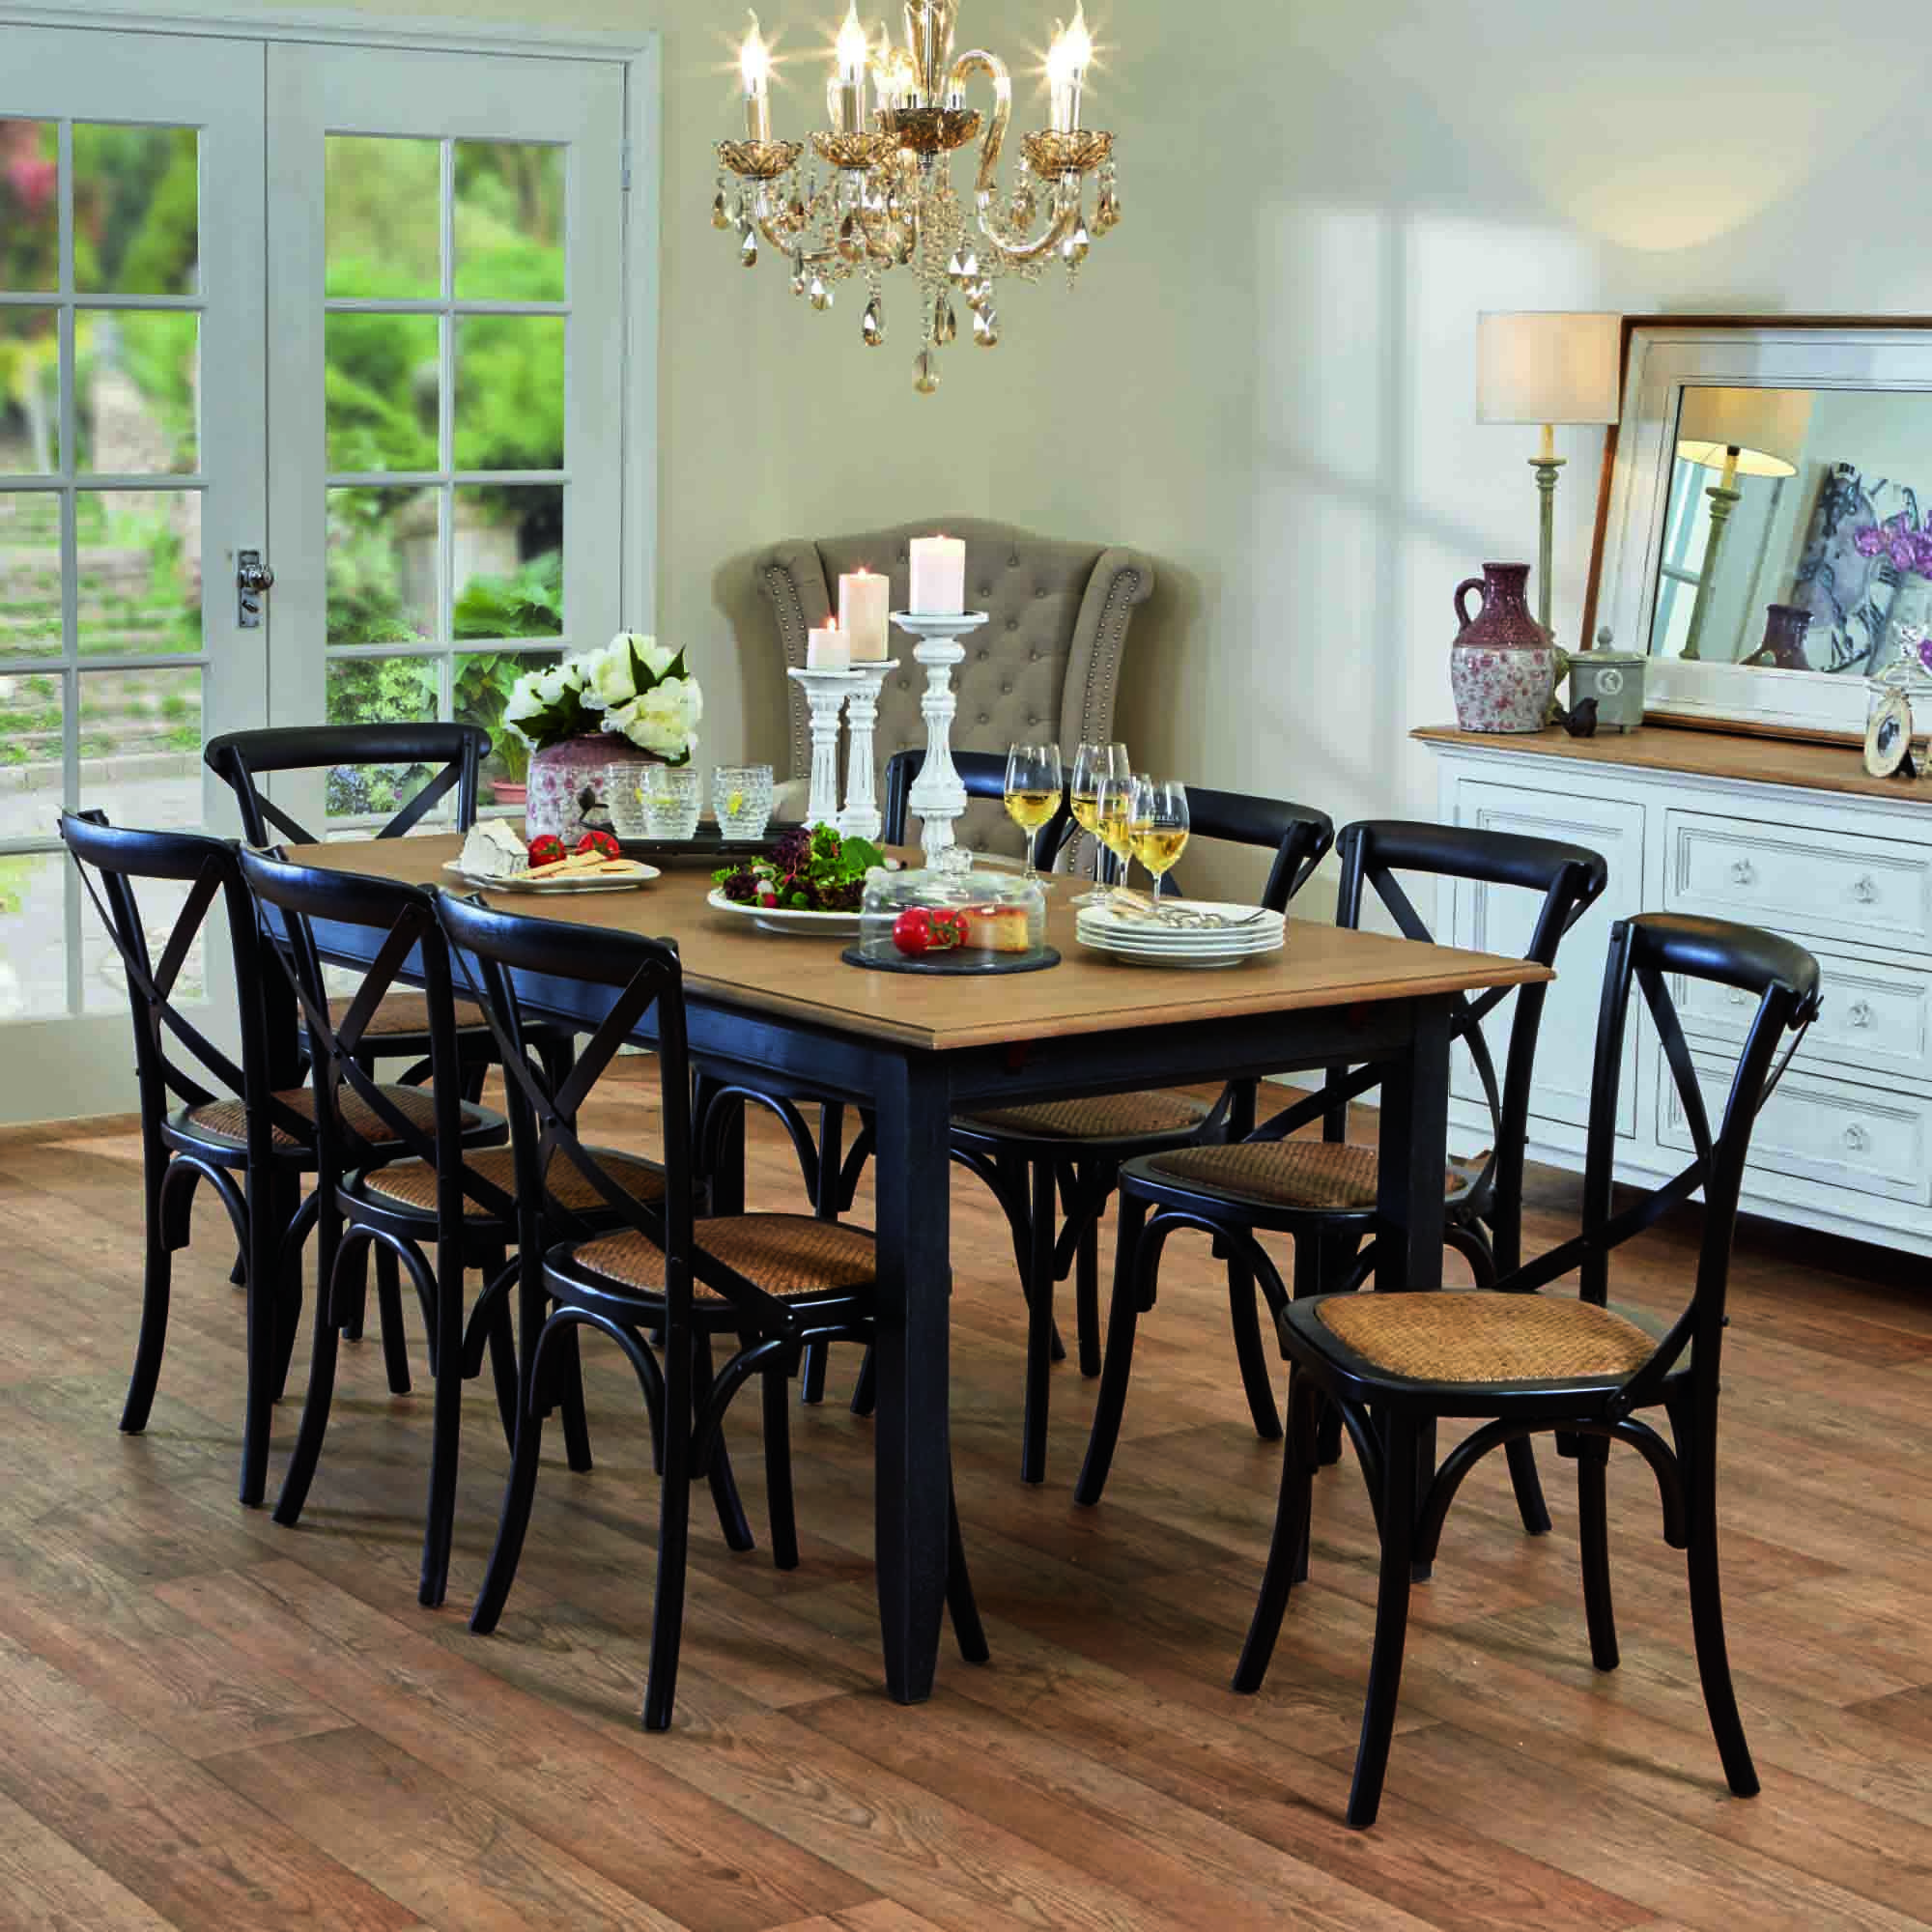 Country Dining Chairs Esquisse Dining Table In Black And Provincial Cross Back